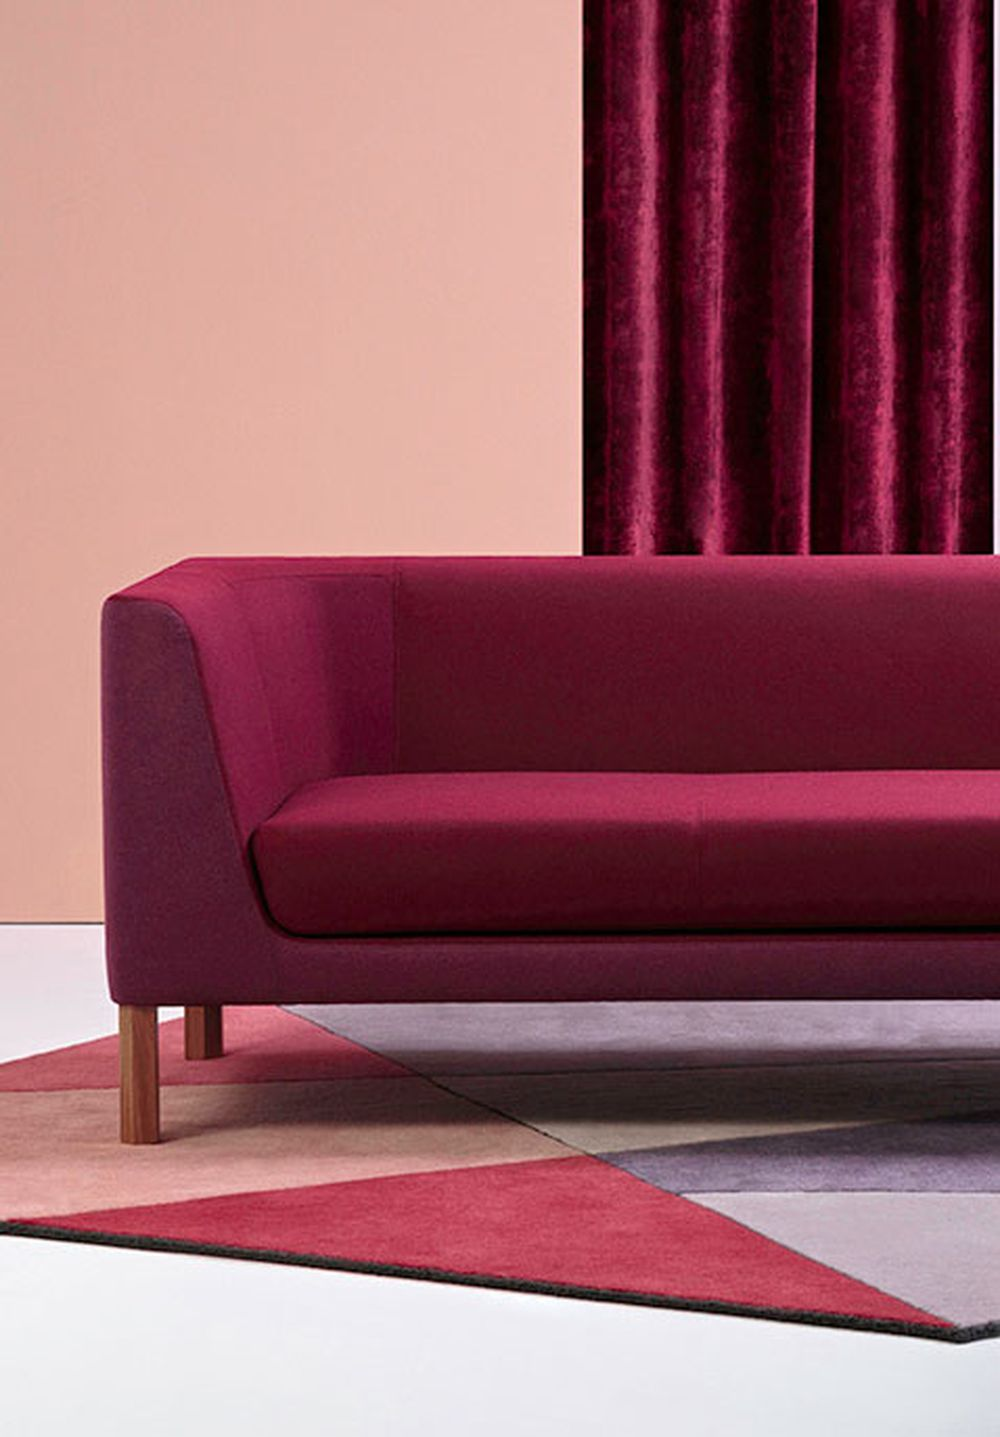 Photo of the fabric Como Bordeaux in situ by Mokum. Use for Upholstery Heavy Duty, Accessory. Style of Plain, Texture